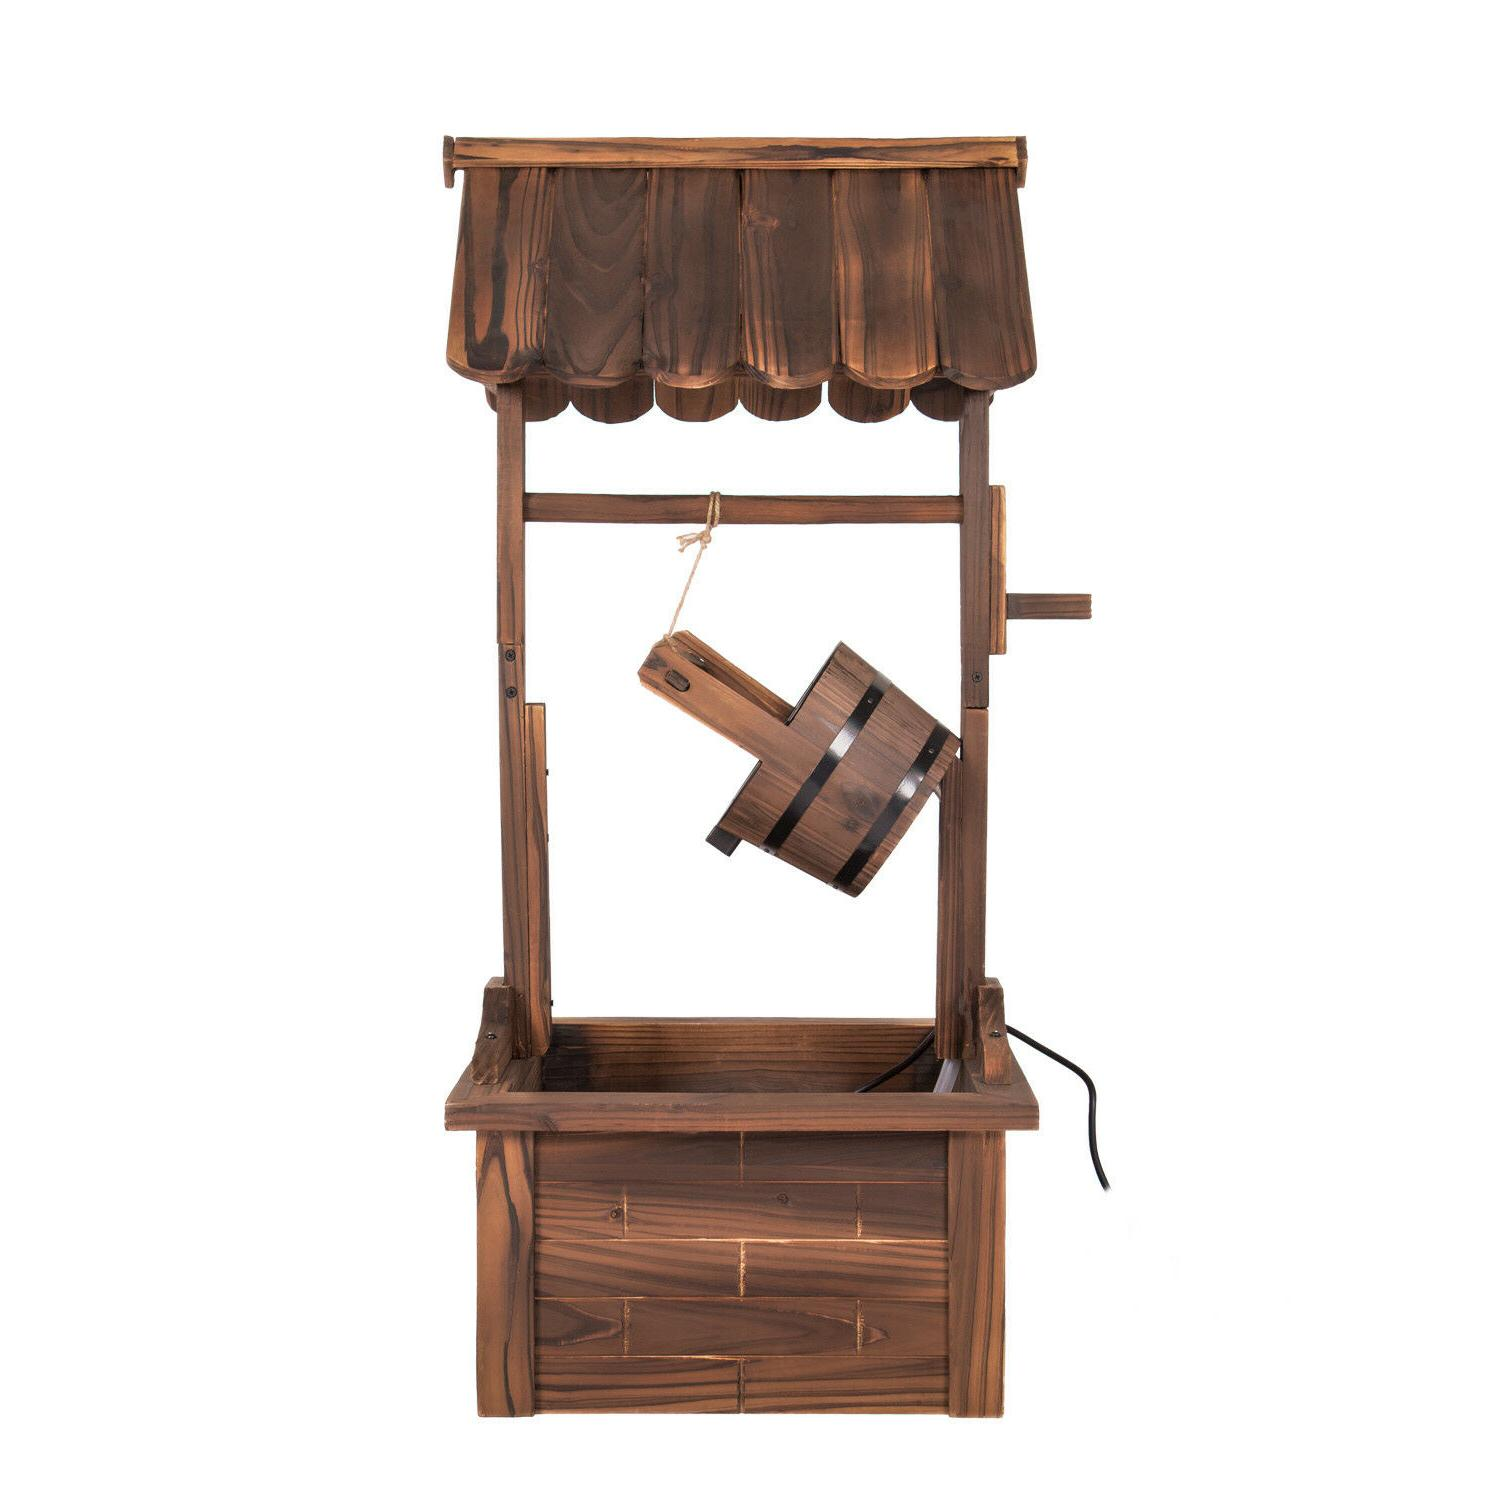 44-Inch Rustic Wishing Well with Pump